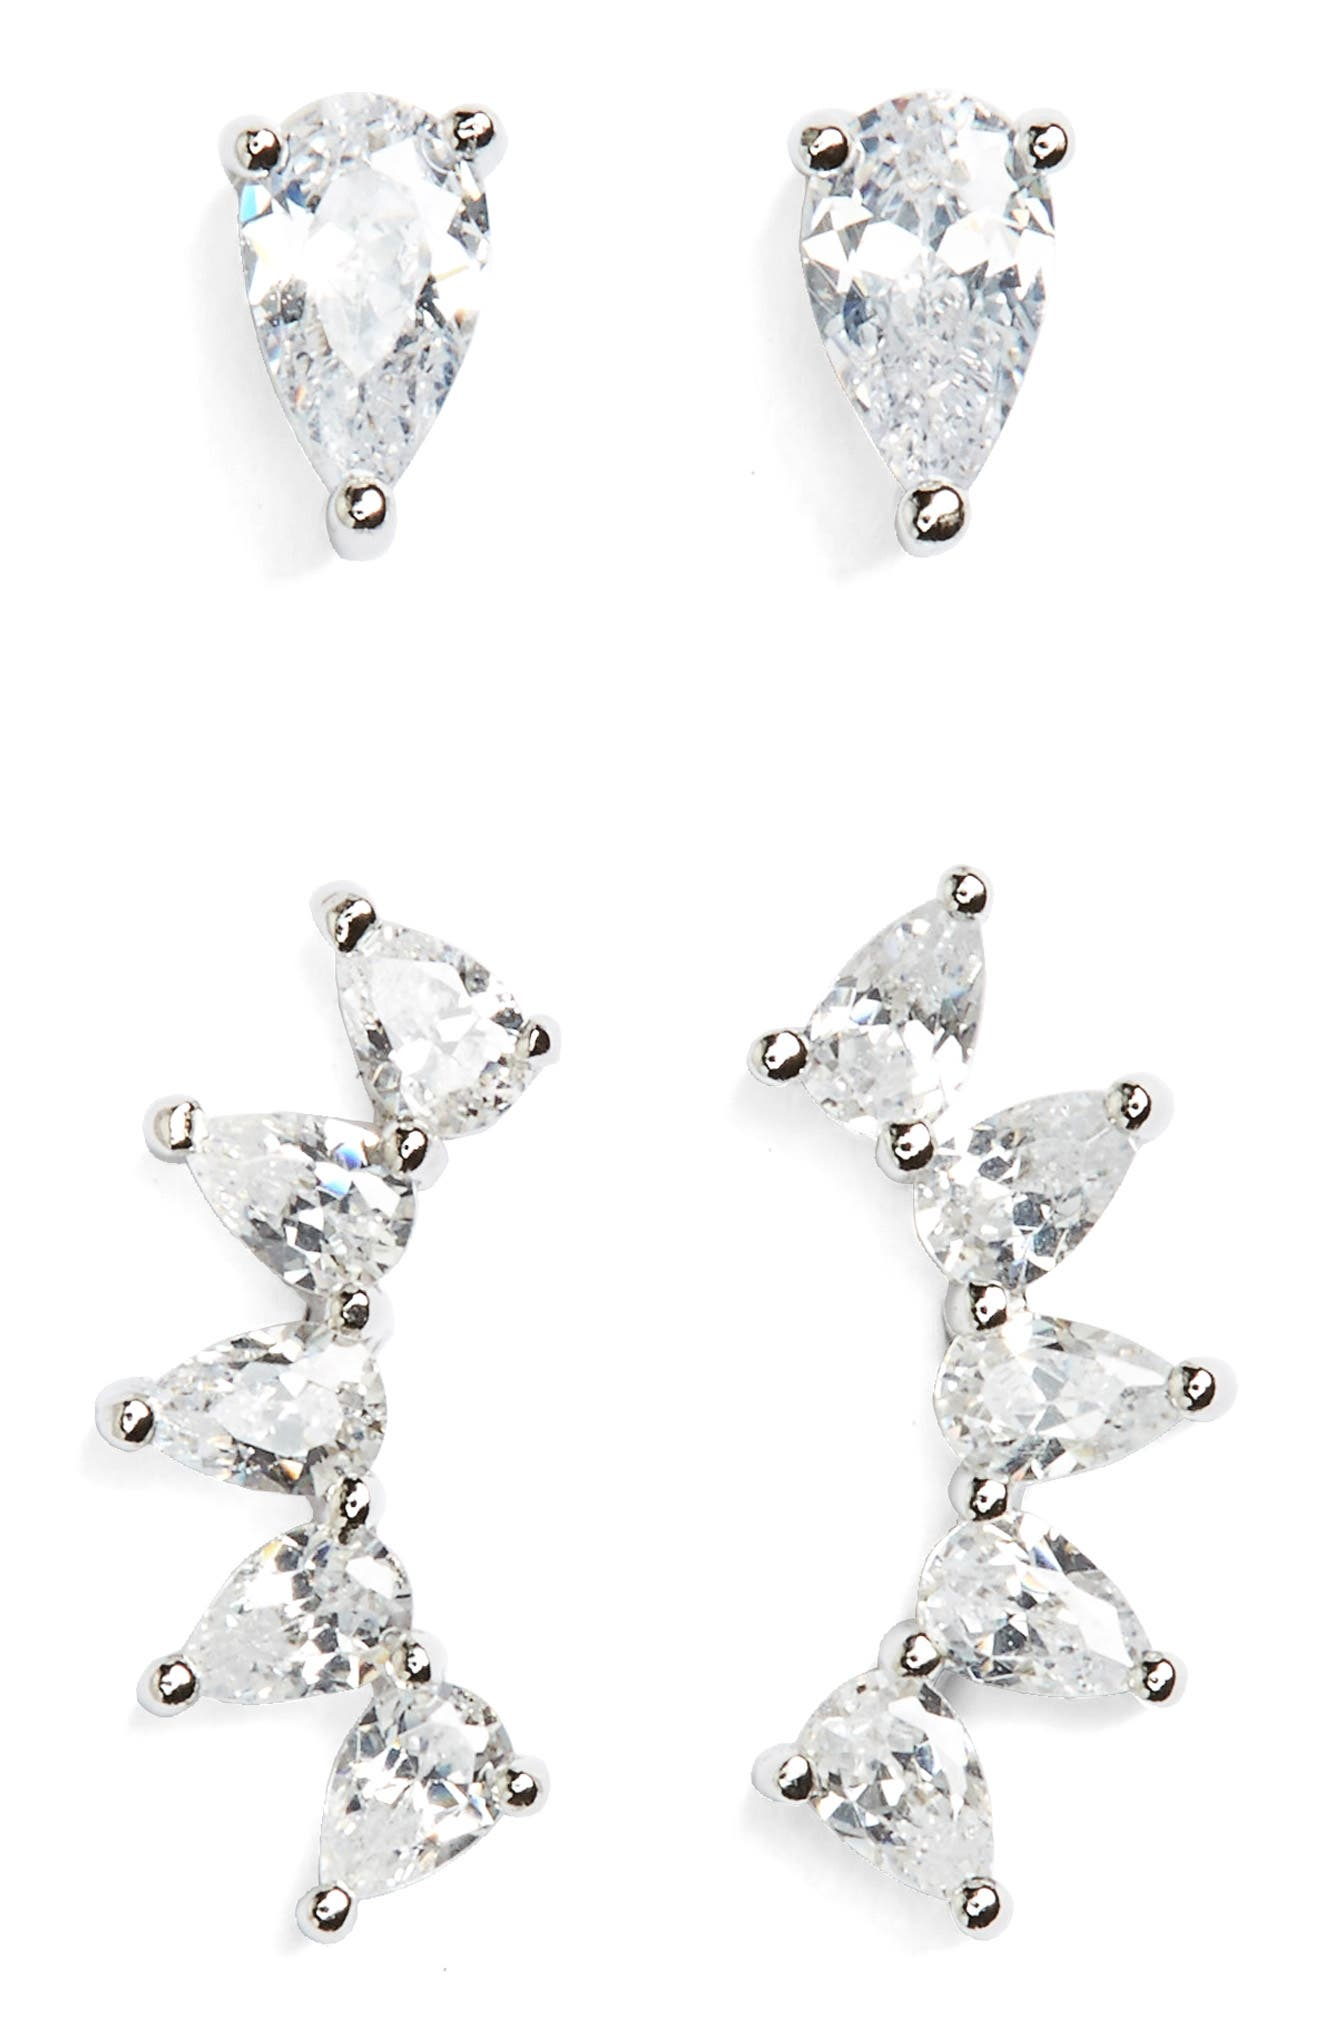 Nordstrom Set of 2 Pear Marquise Cubic Zirconia Earrings